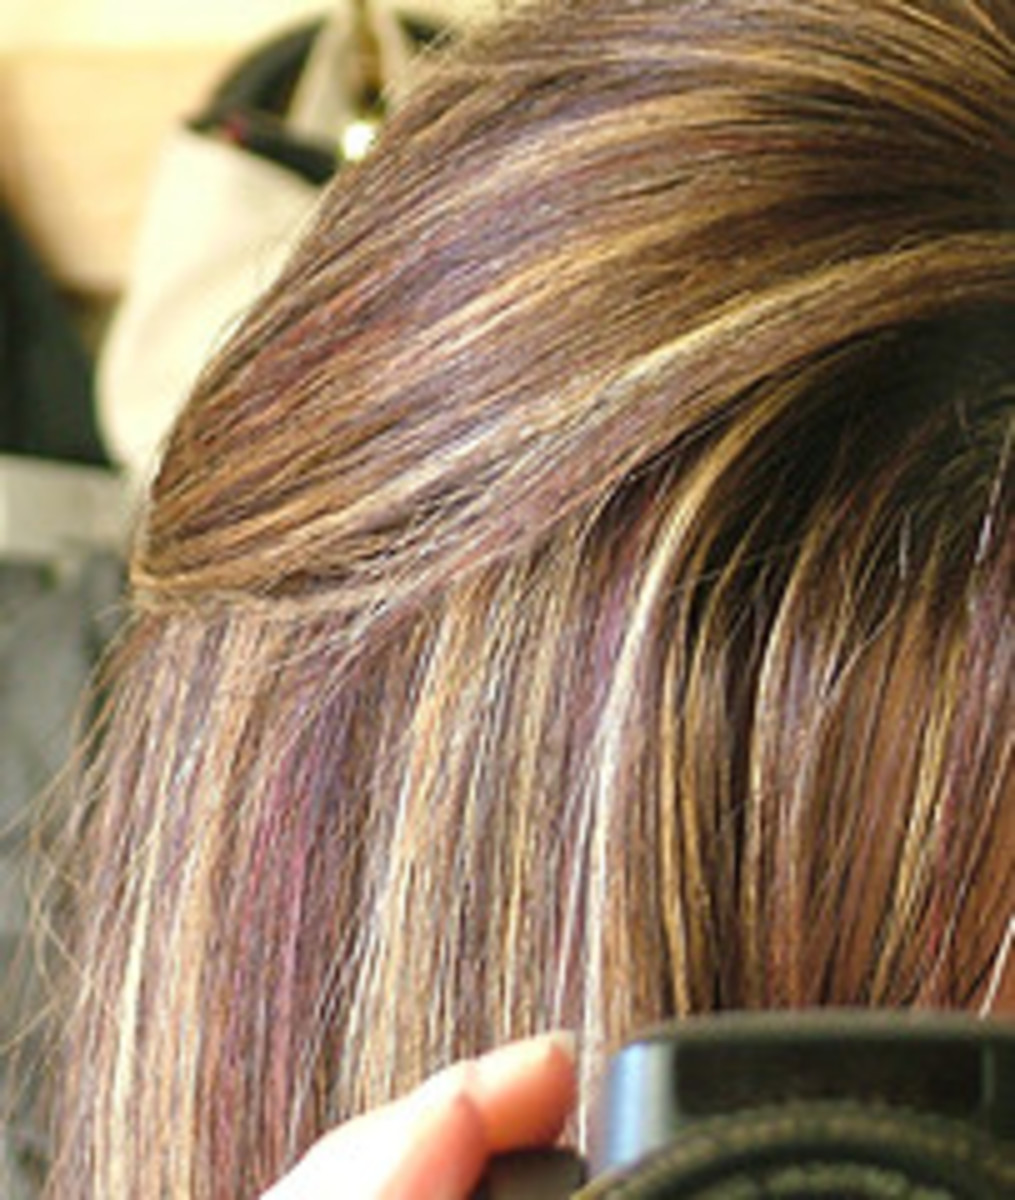 Autumn Hair (Photo from Flickr)